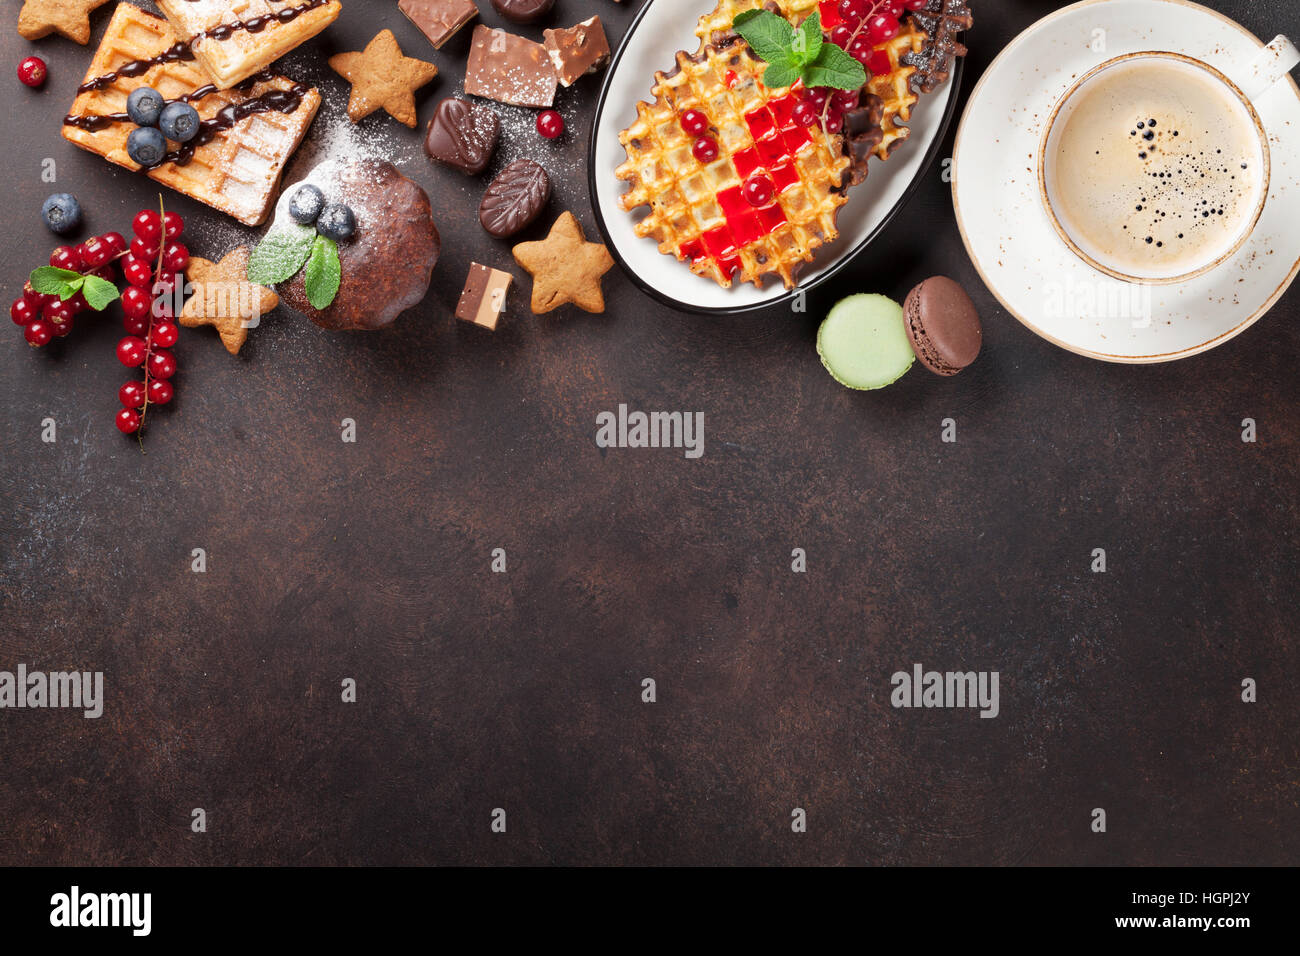 Coffee with waffles and sweets. Top view with copy space for your text - Stock Image